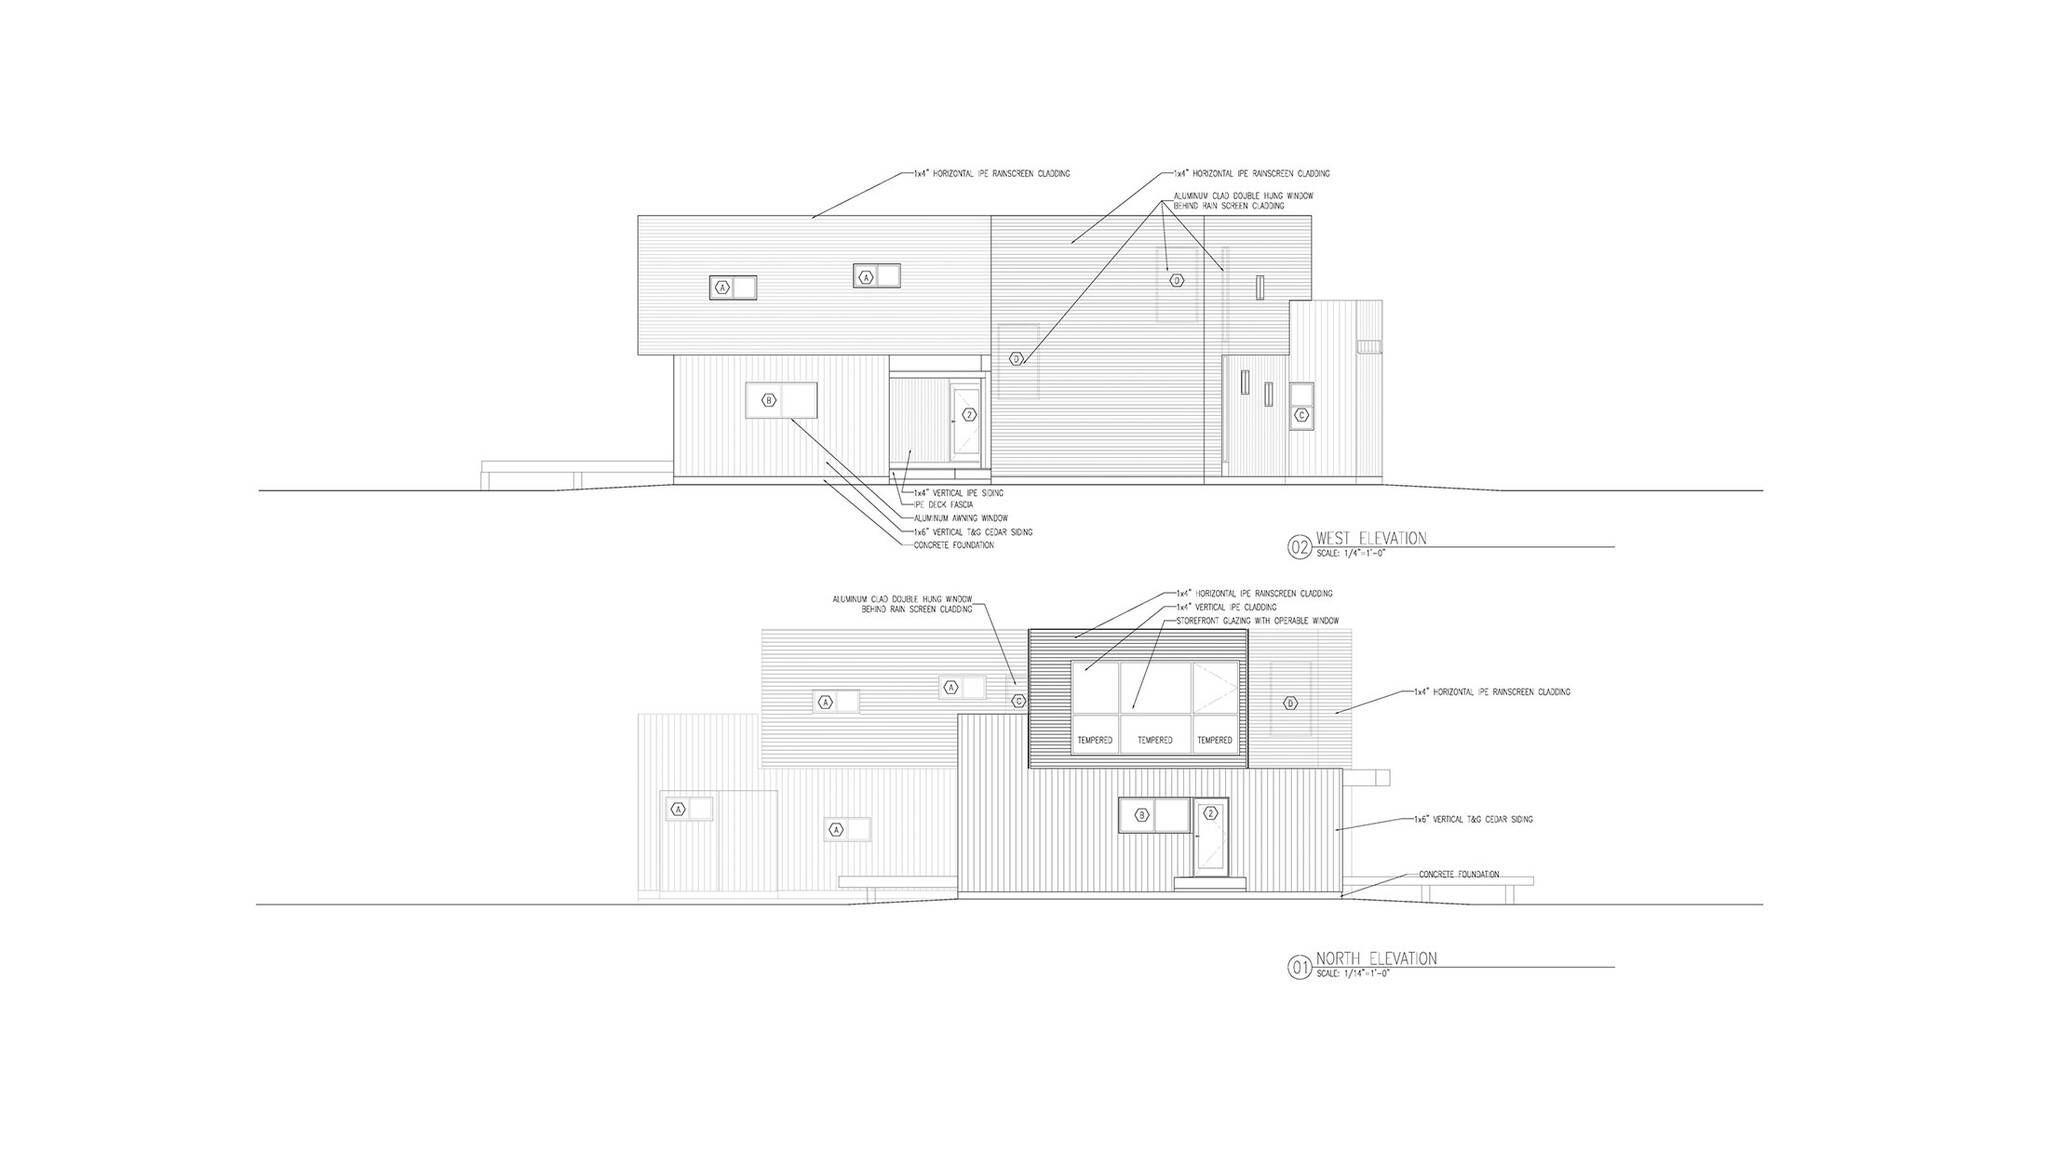 North and West elevation of the sustainable lake house project in Omena, Michigan designed by the architecture studio Danny Forster & Architecture